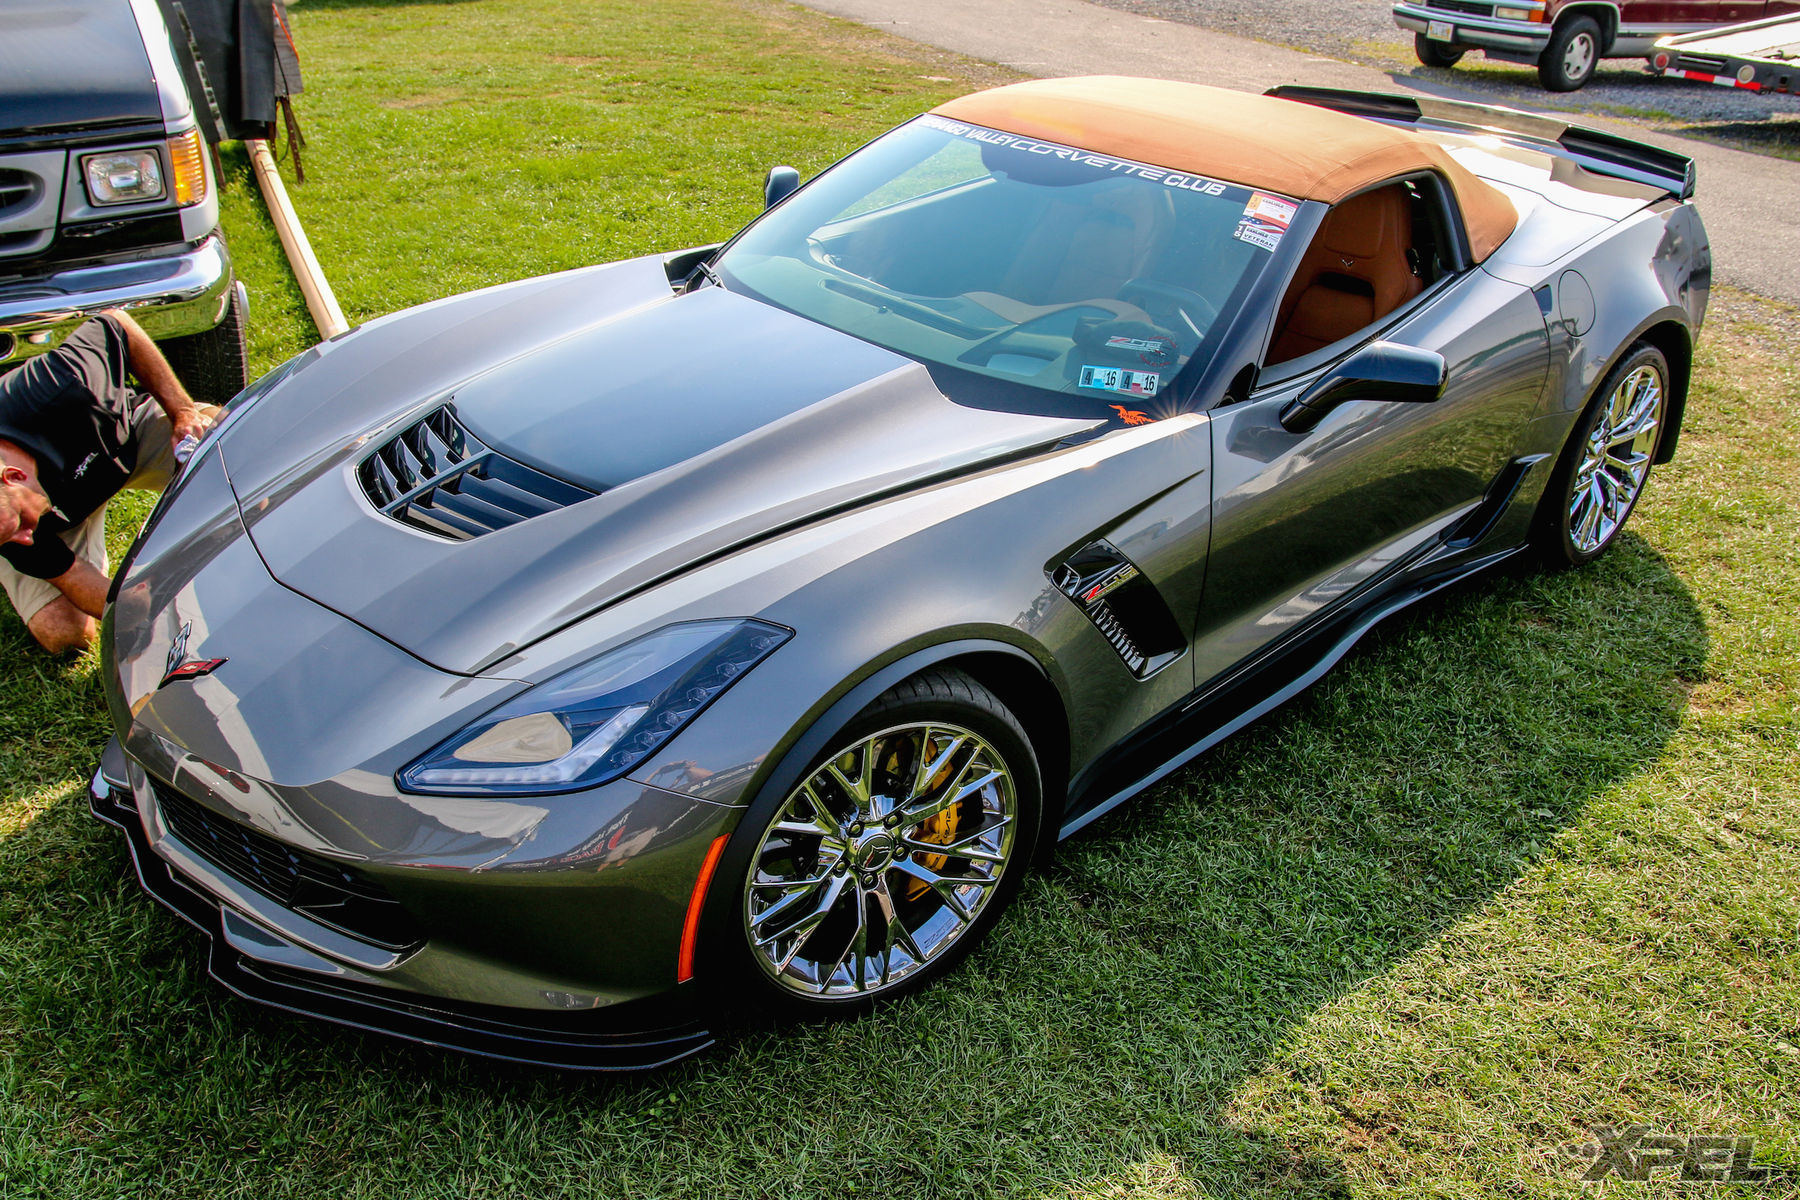 2016 Chevrolet Corvette Z06 | Chevy Corvette at Corvettes at Carlisle 2015